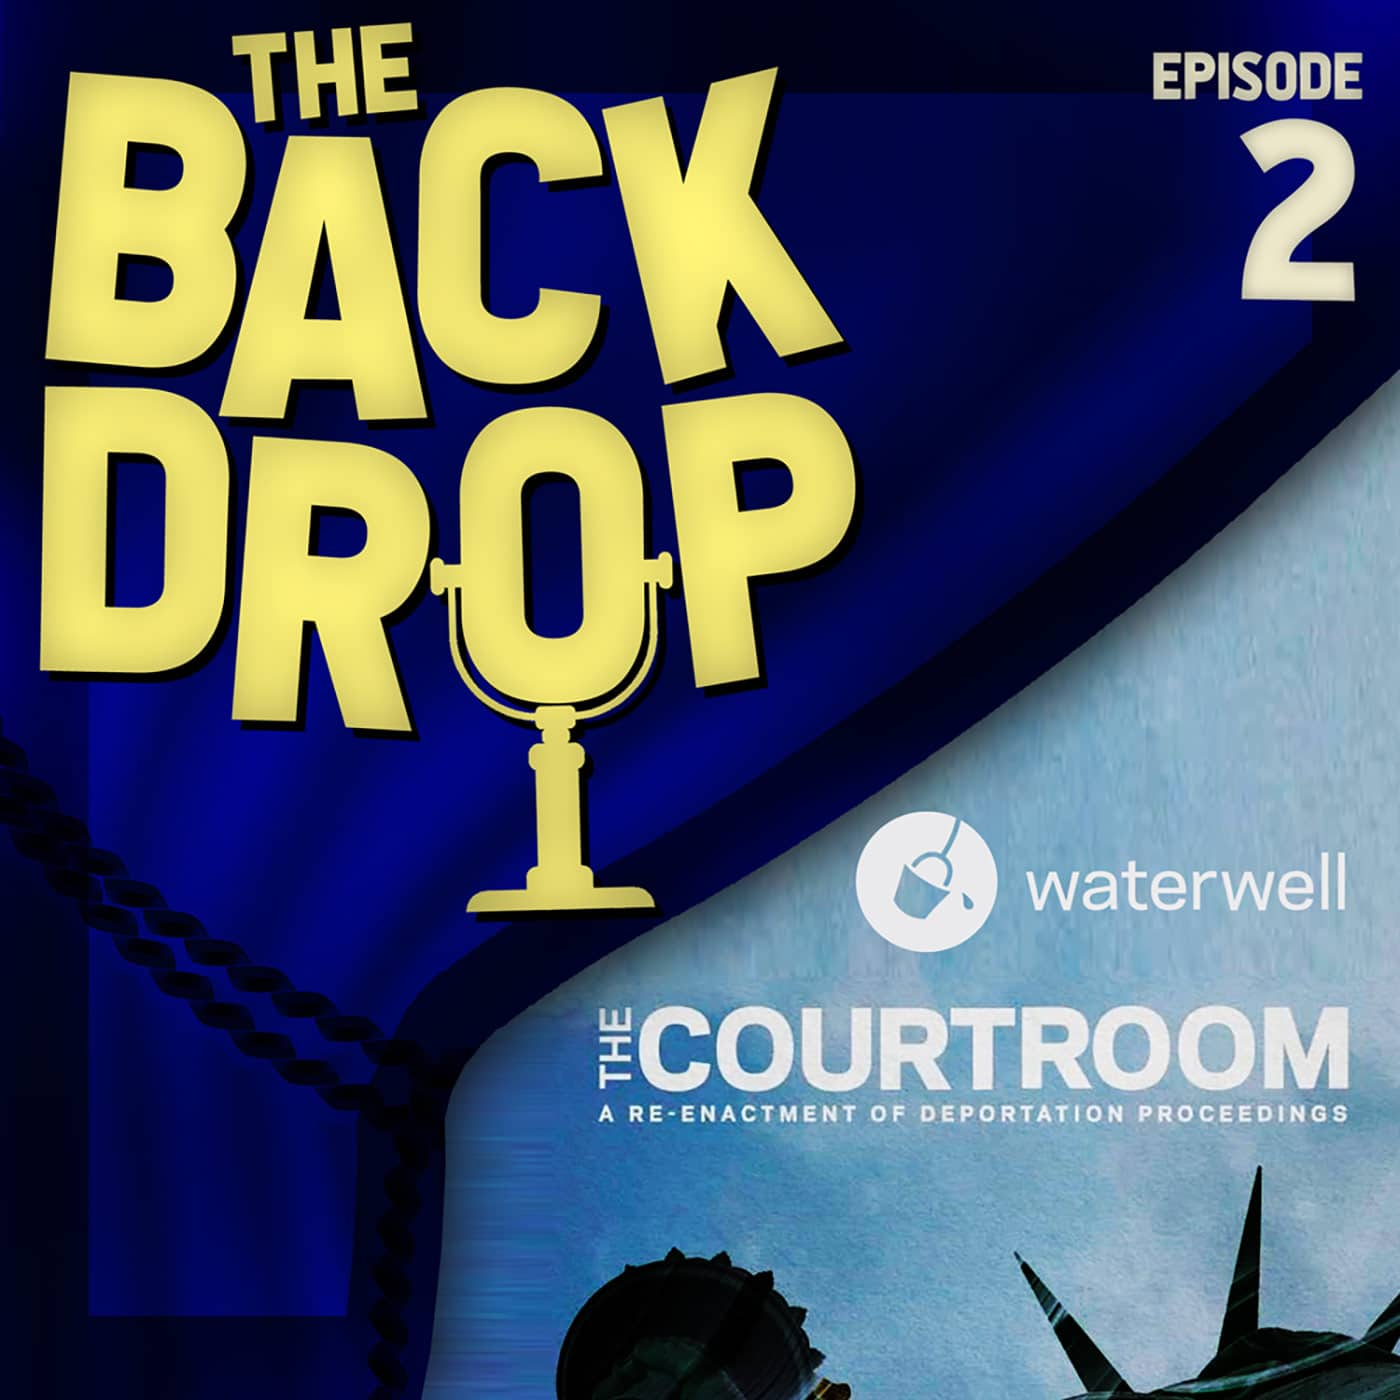 The Backdrop Podcast Episode 2 Waterwell The Courtroom